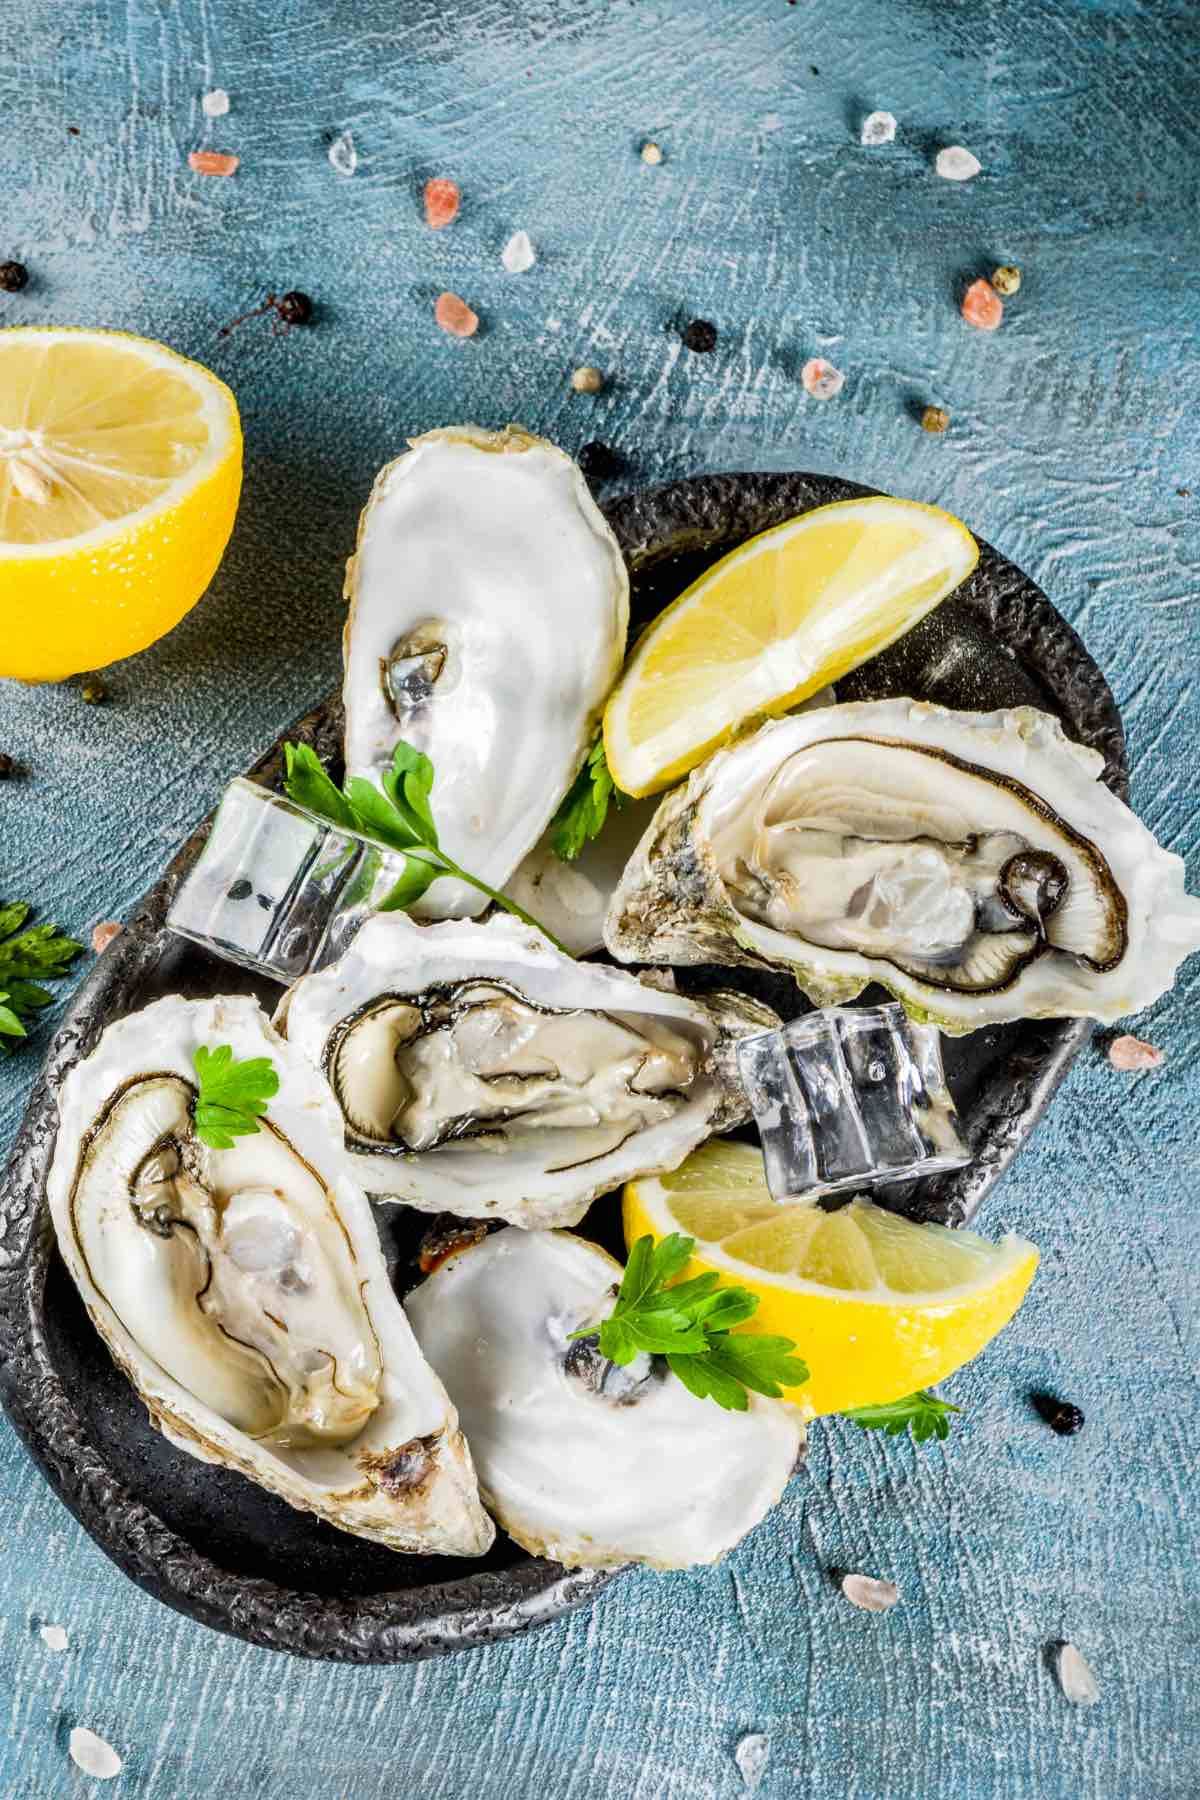 Fresh oysters that are plump with a glossy appearance